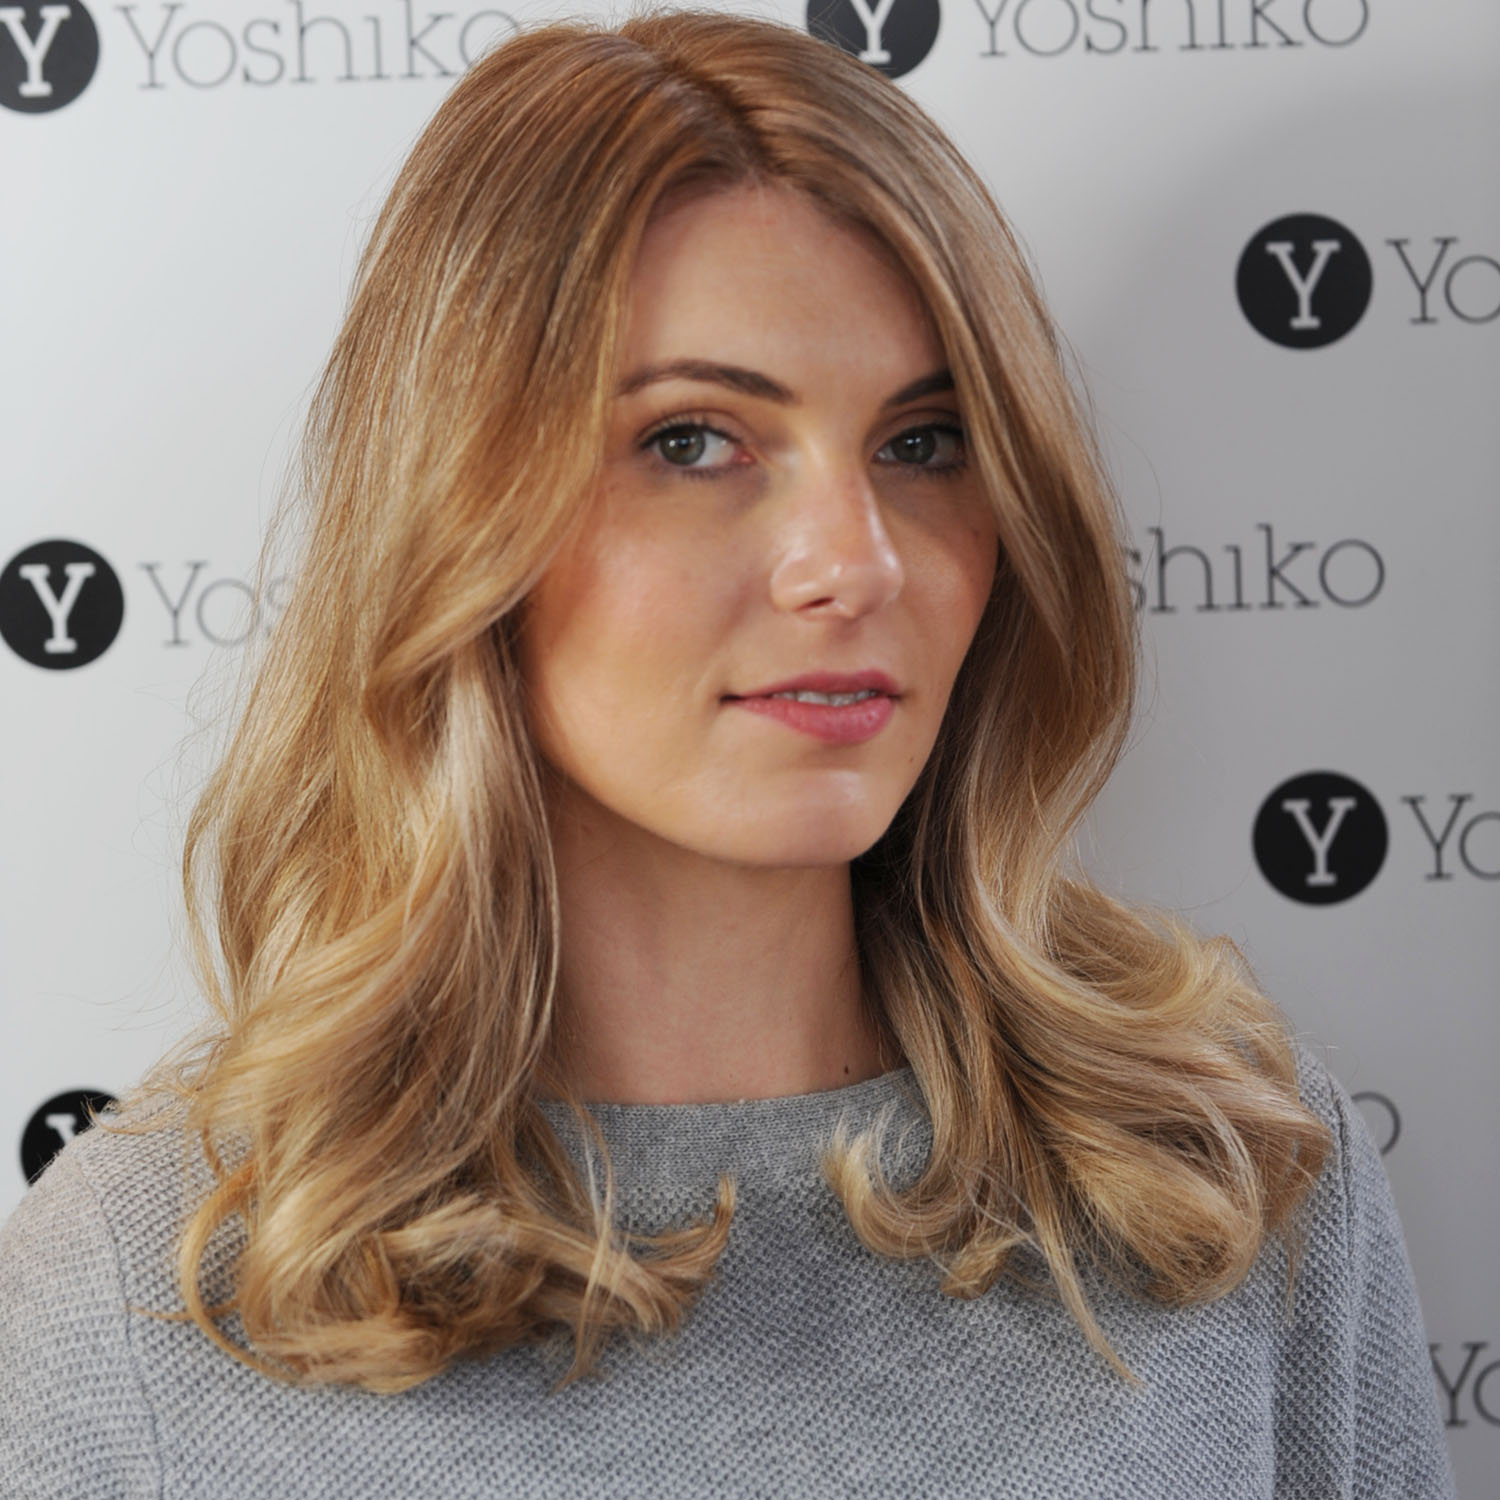 hairdresser st kilda honey blonde yoshiko hair.jpg